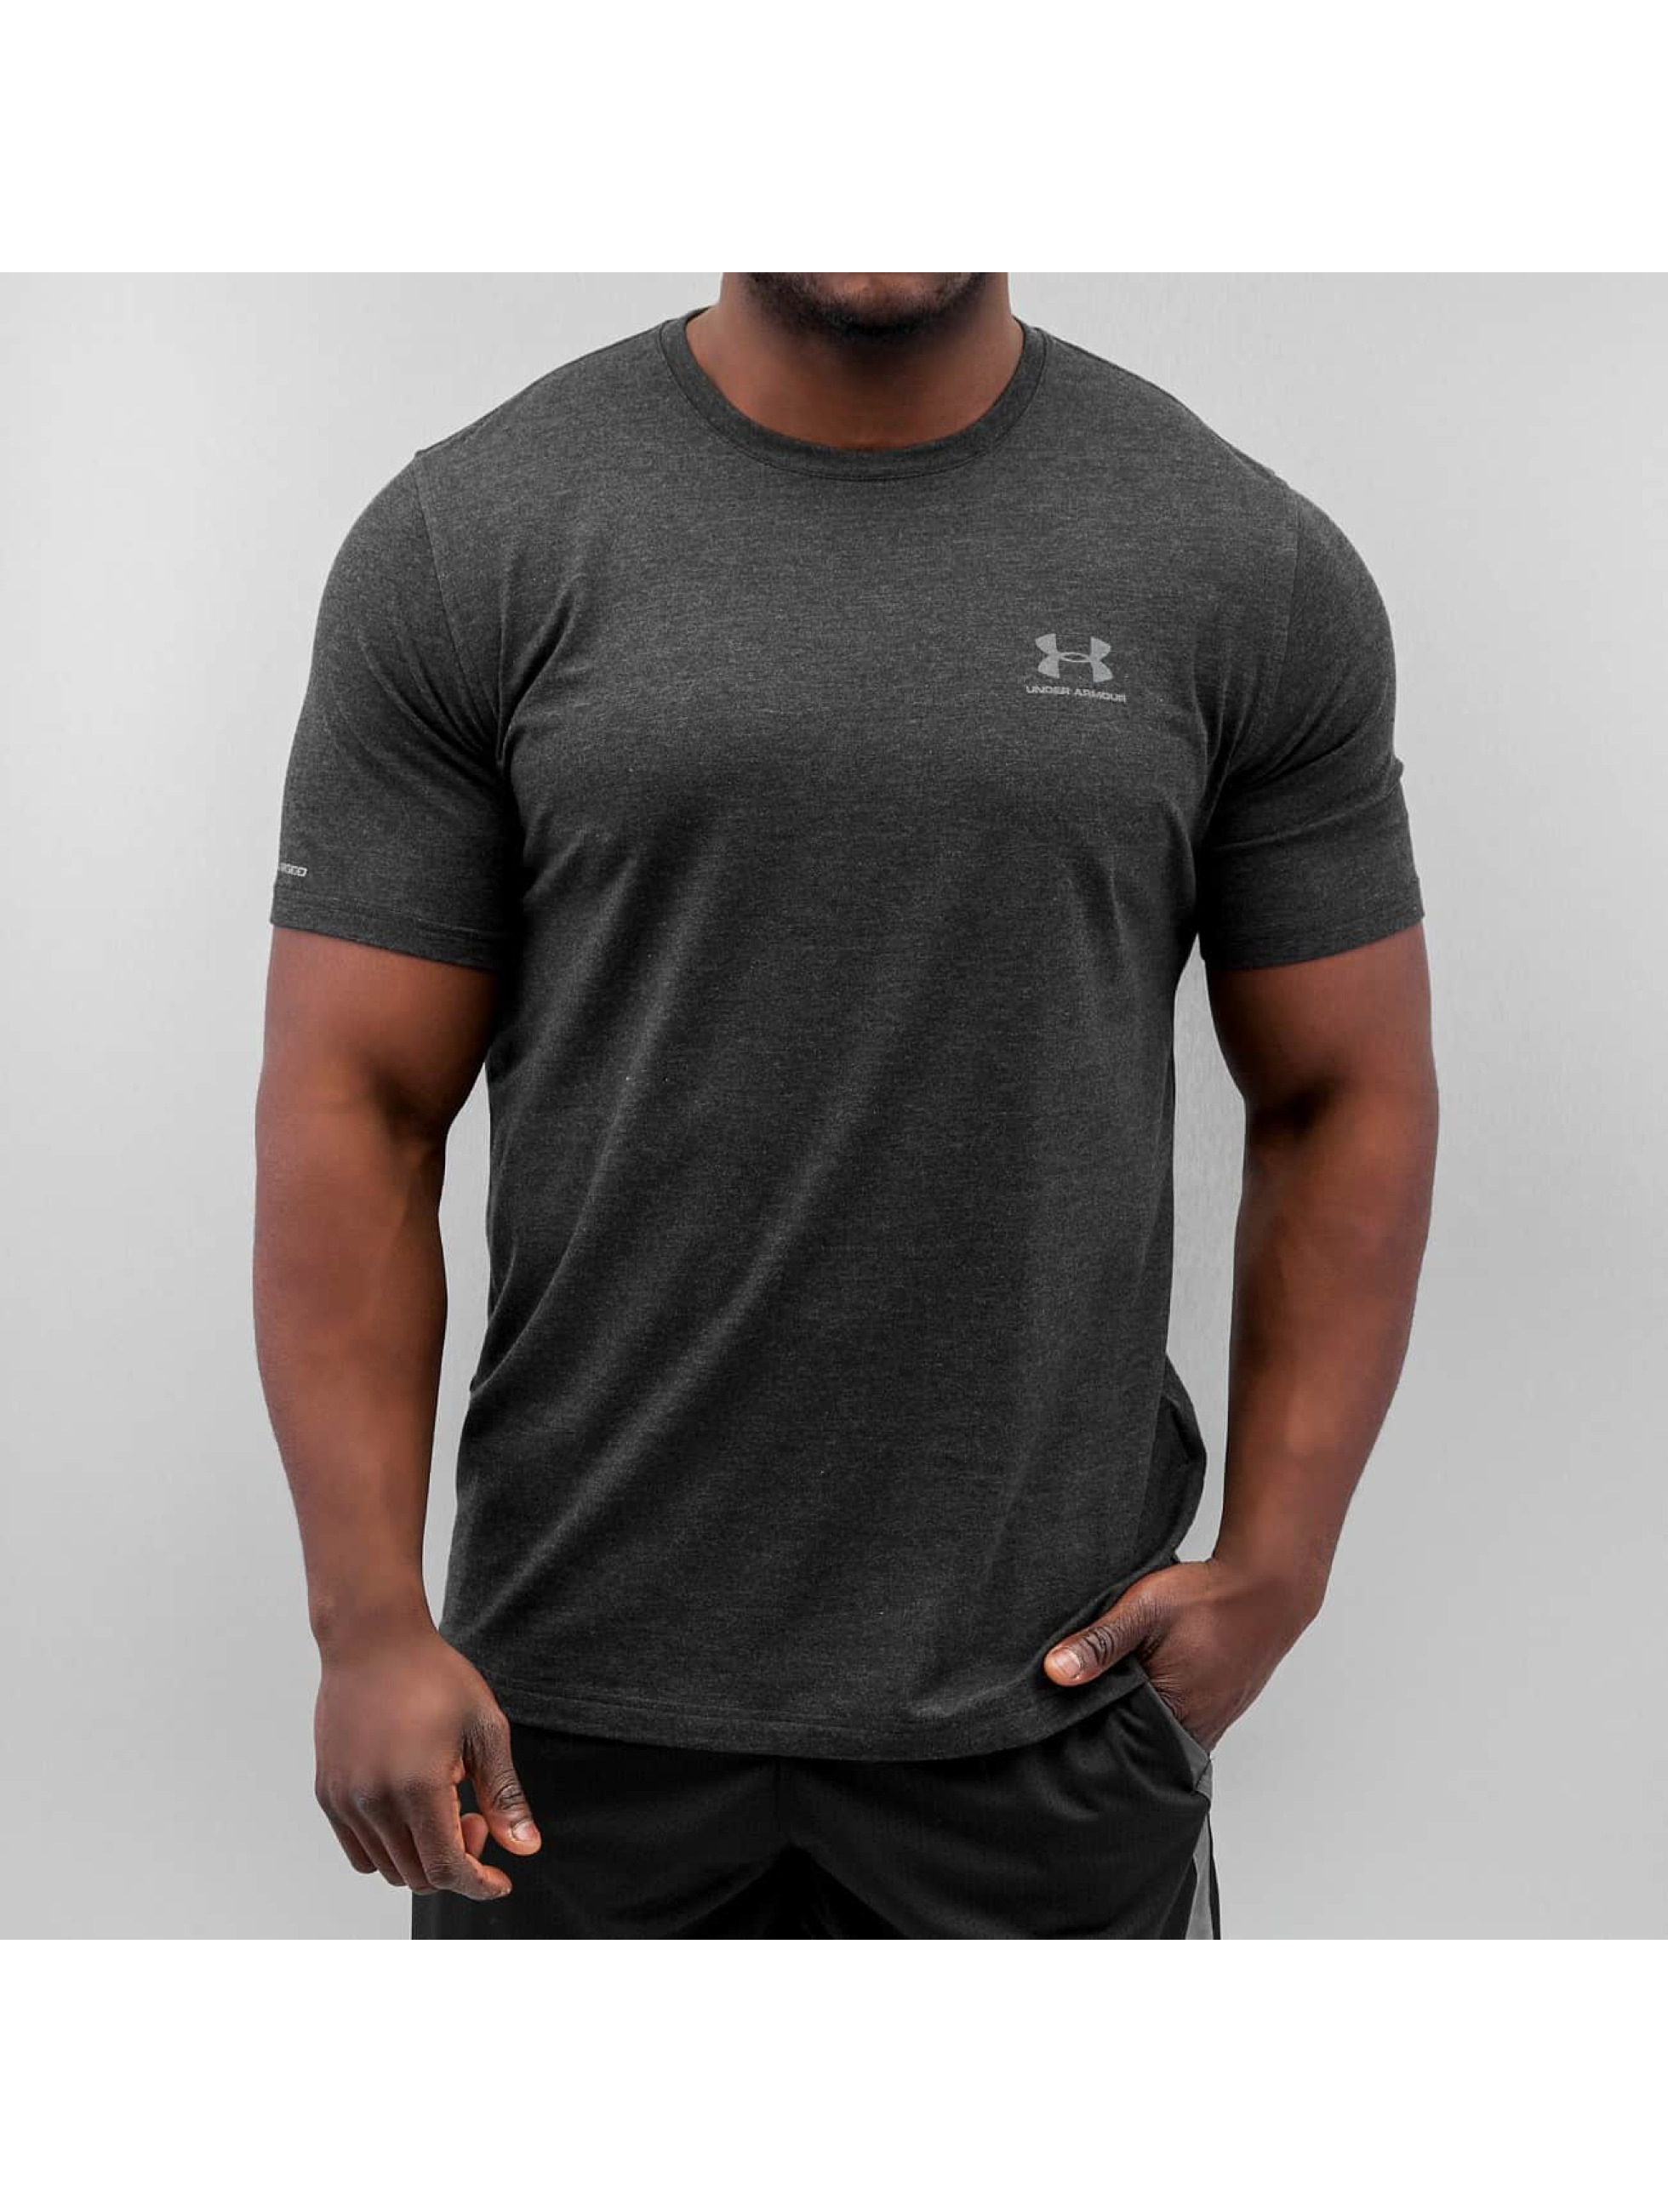 Under Armour T-Shirt Charged Cotton Left Chest Lockup schwarz